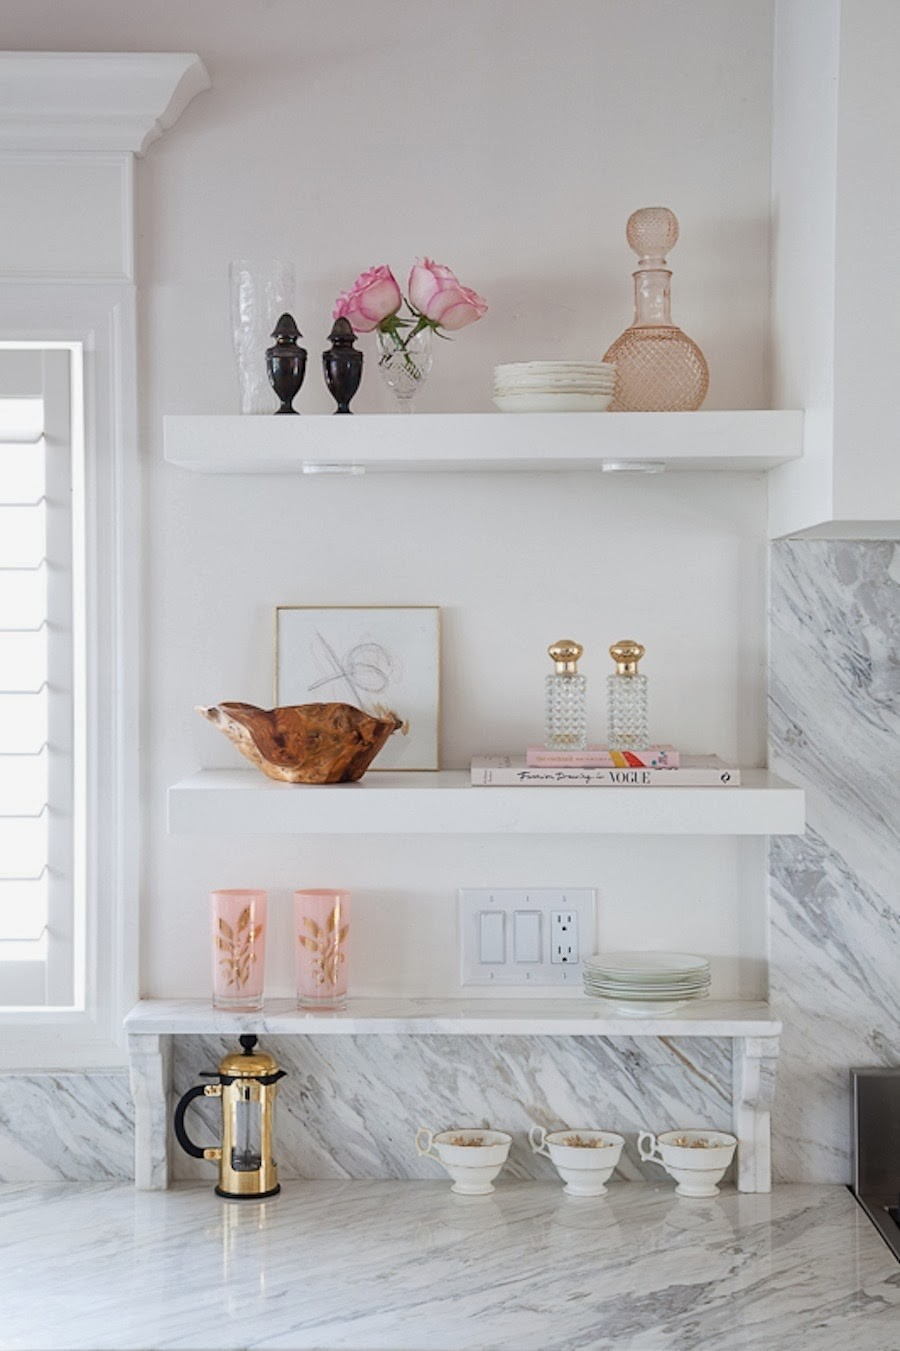 Marble kitchen countertops open shelves